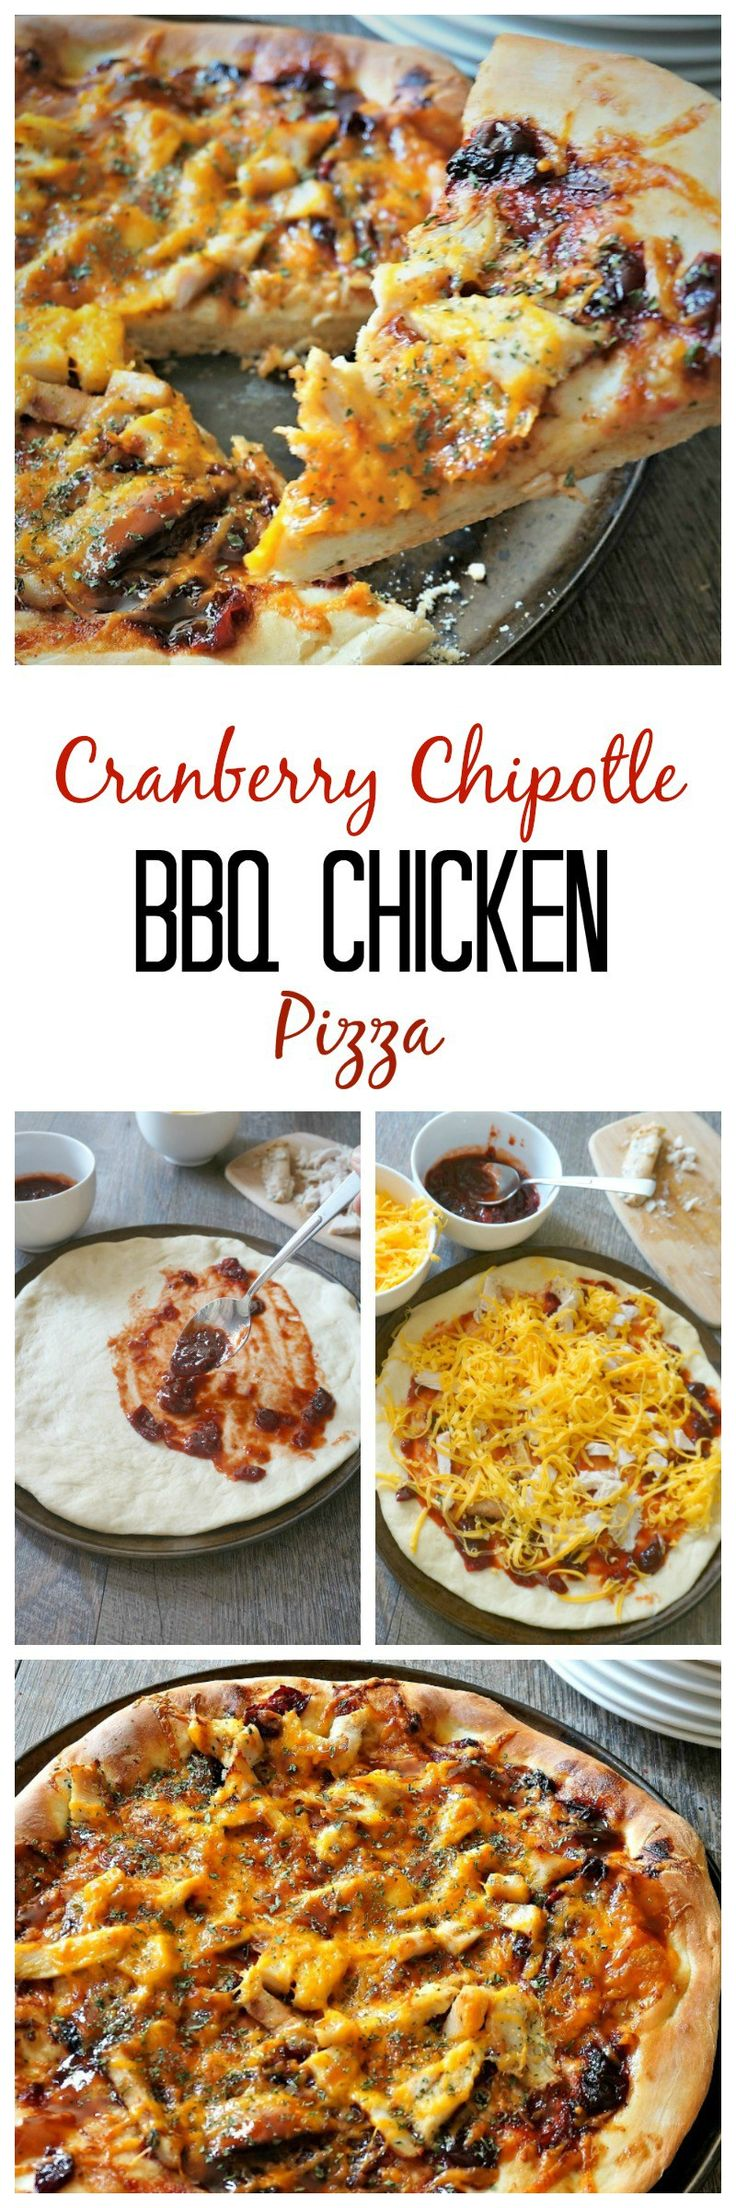 Cranberry Chipotle BBQ Chicken Pizza: Leftover cranberry sauce is transformed into the perfect sweet and spicy base for a BBQ chicken (or turkey) pizza. #SundaySupper